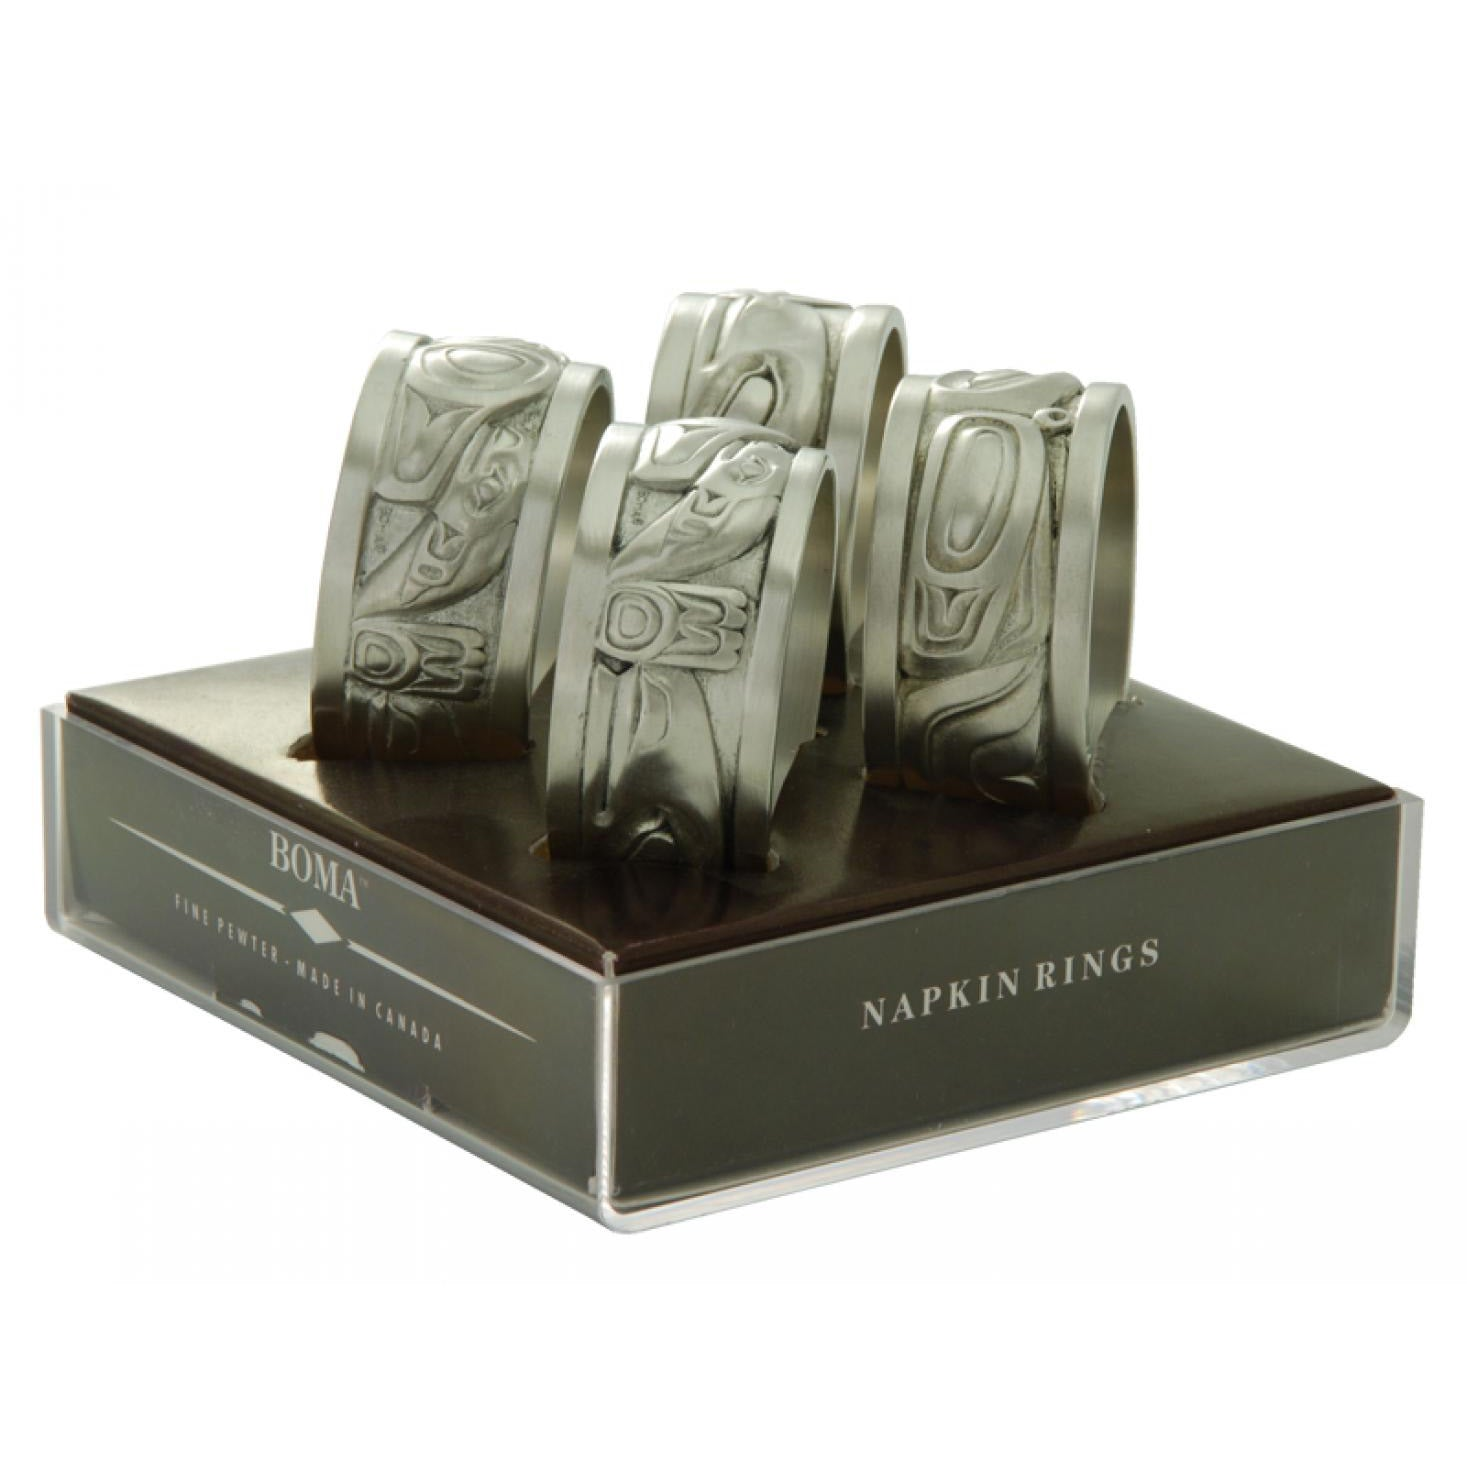 Native Pewter Napkin Rings (set of 4)